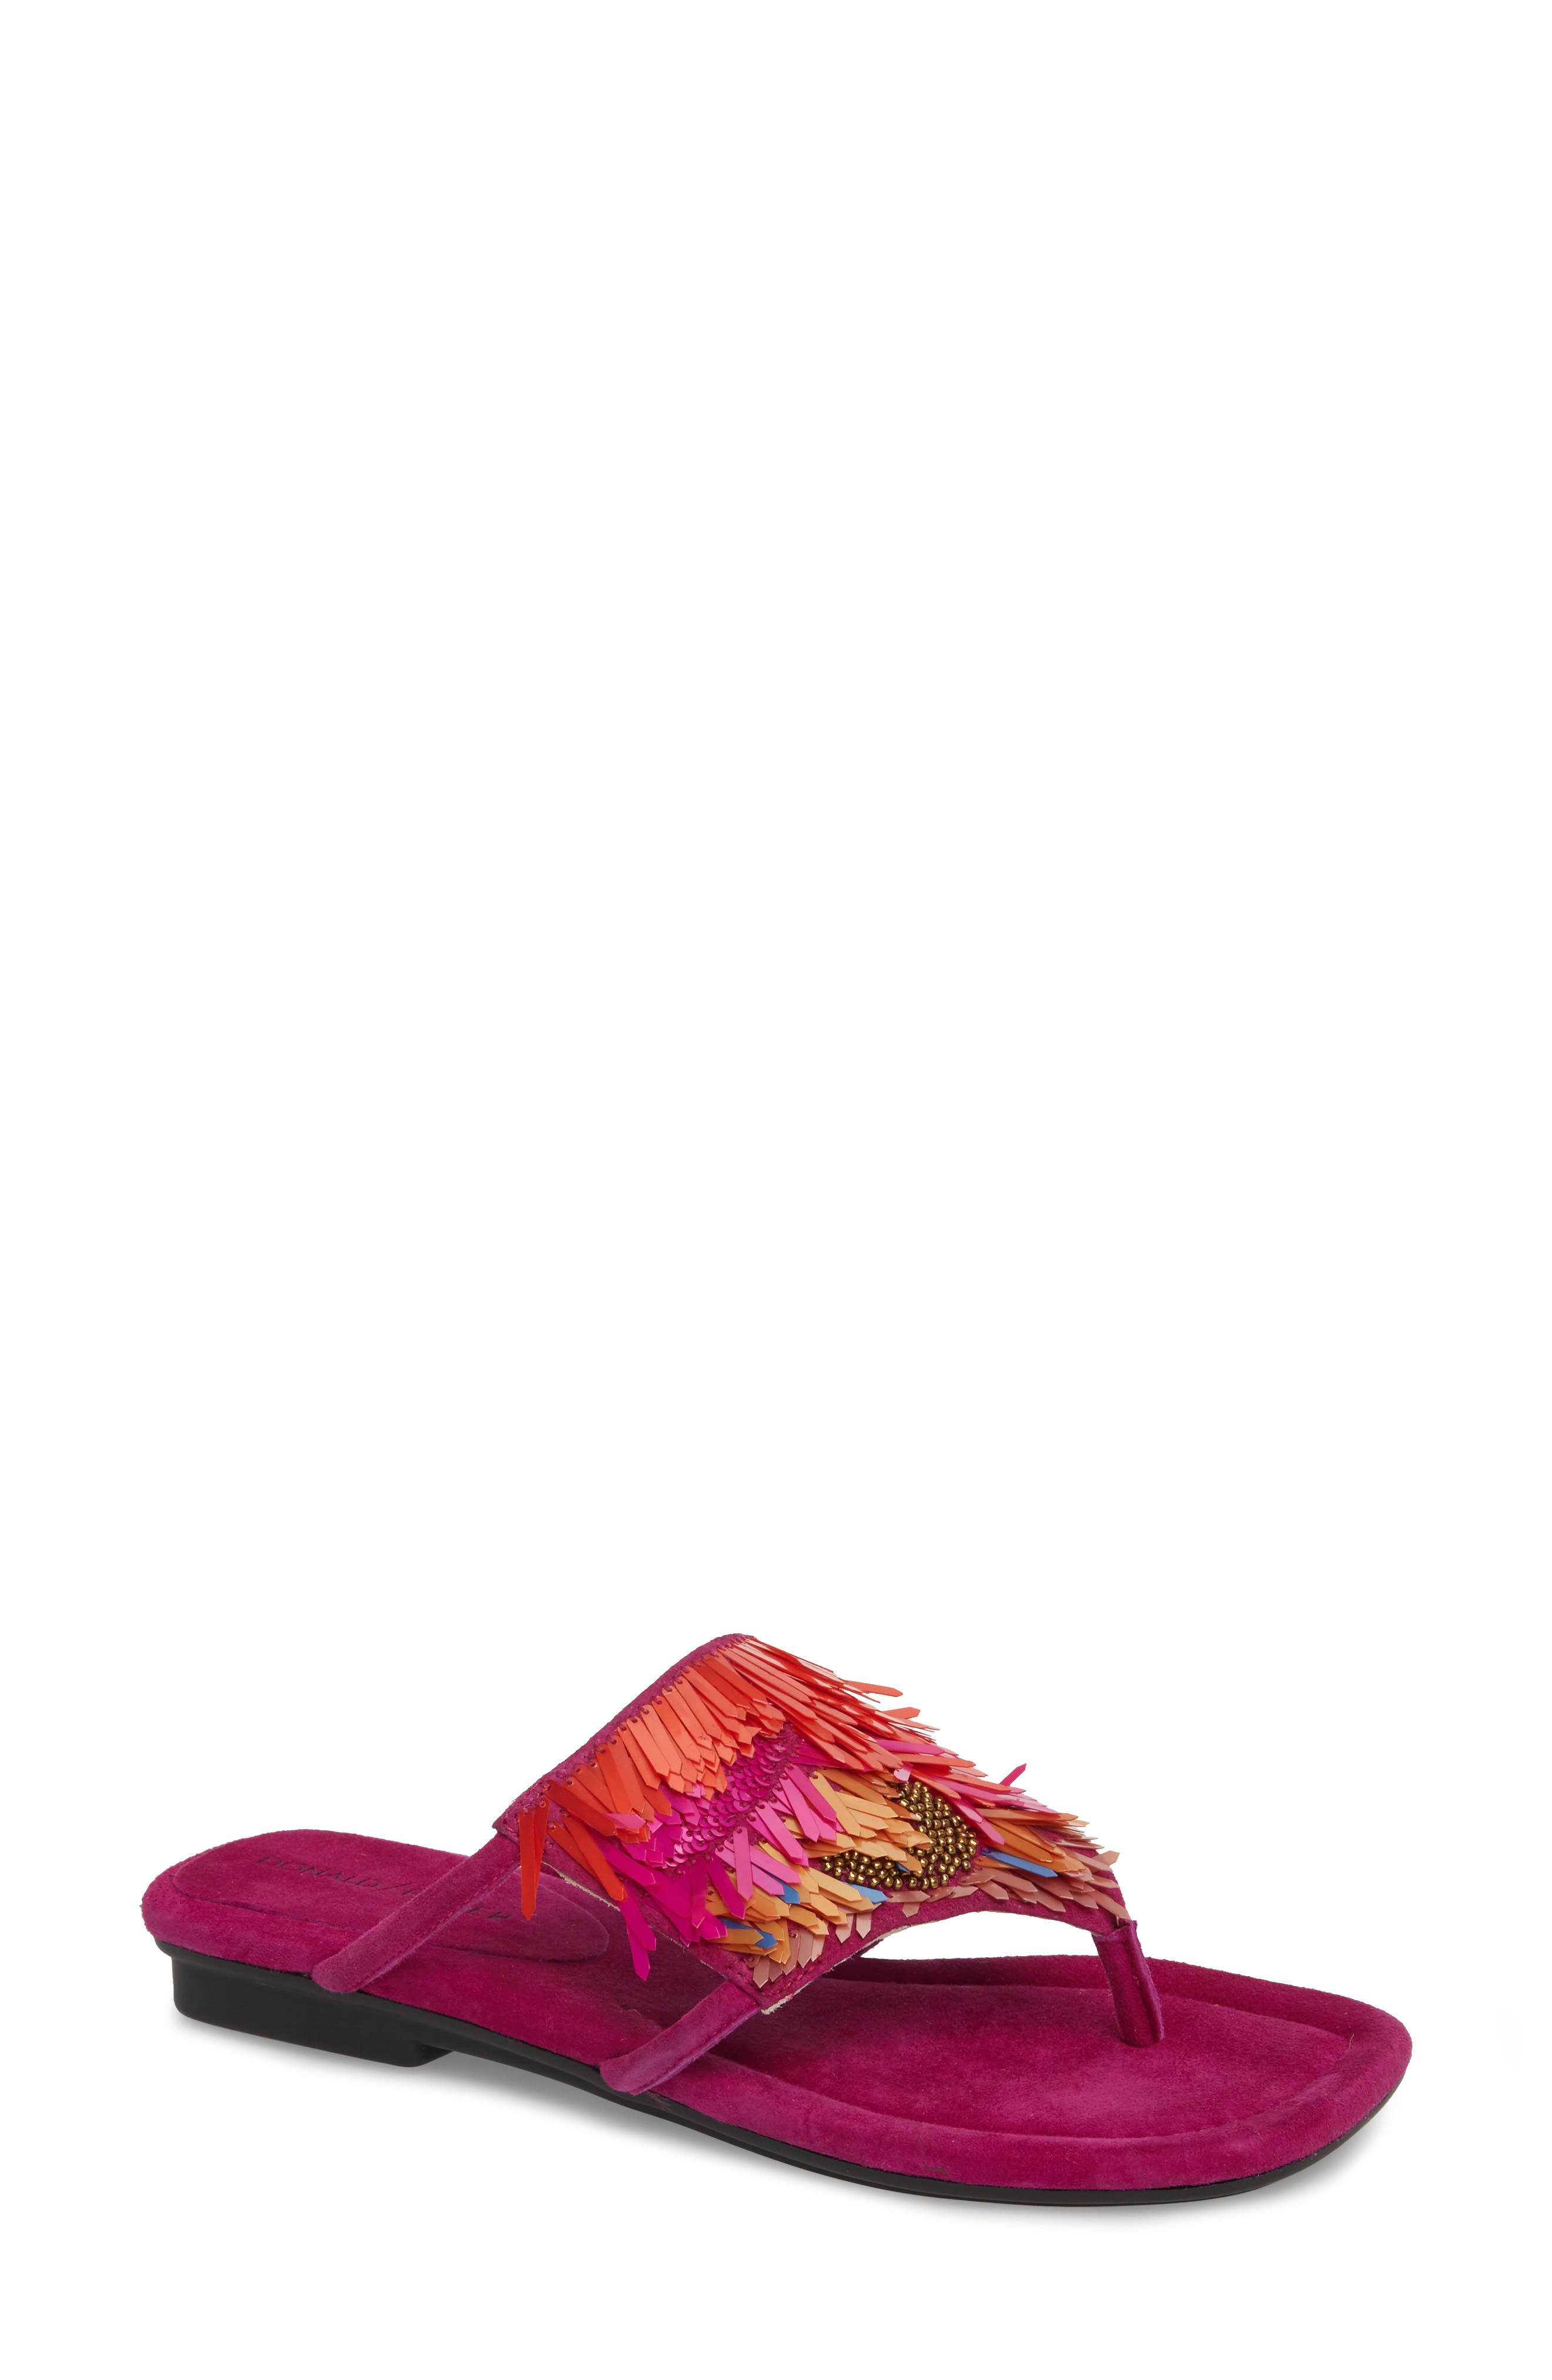 Kya Feather Sequin Sandal,                         Main,                         color, Magenta Leather